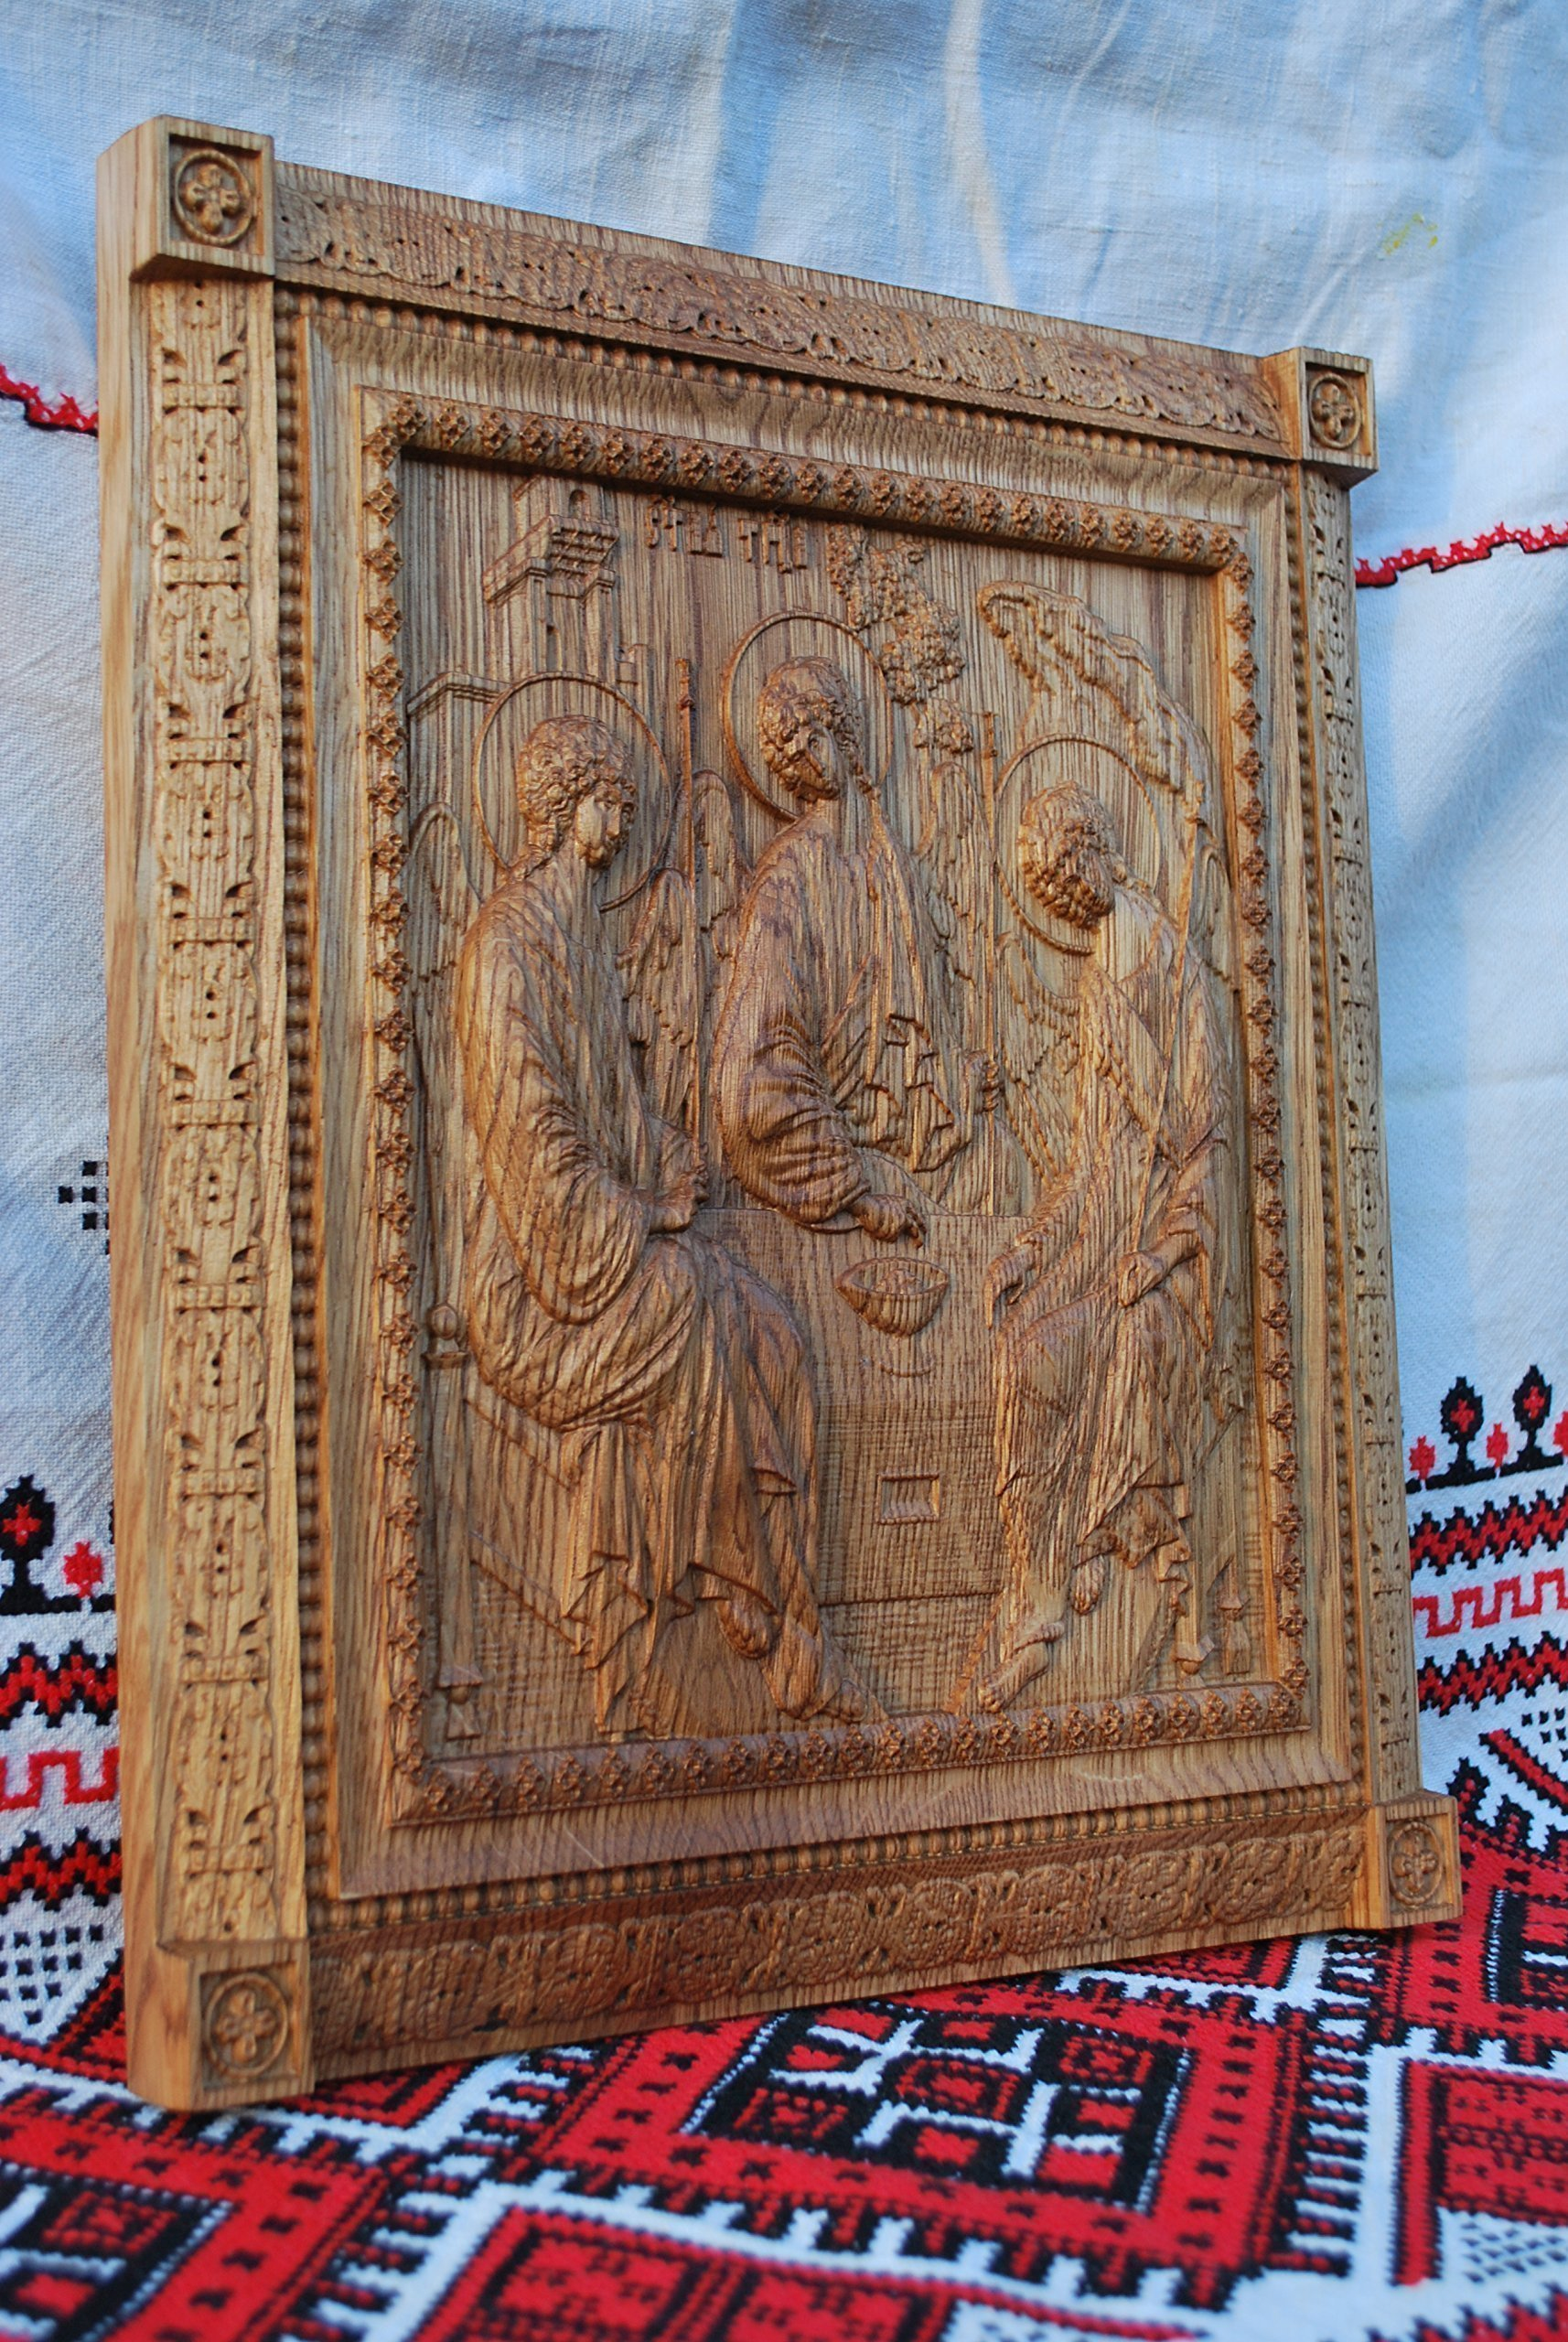 Holy Trinity Icon personalized religious gift Wood Carved religious wall plaque FREE ENGRAVING FREE SHIPPING by Woodenicons Artworkshop ''Tree of life'' (Image #4)